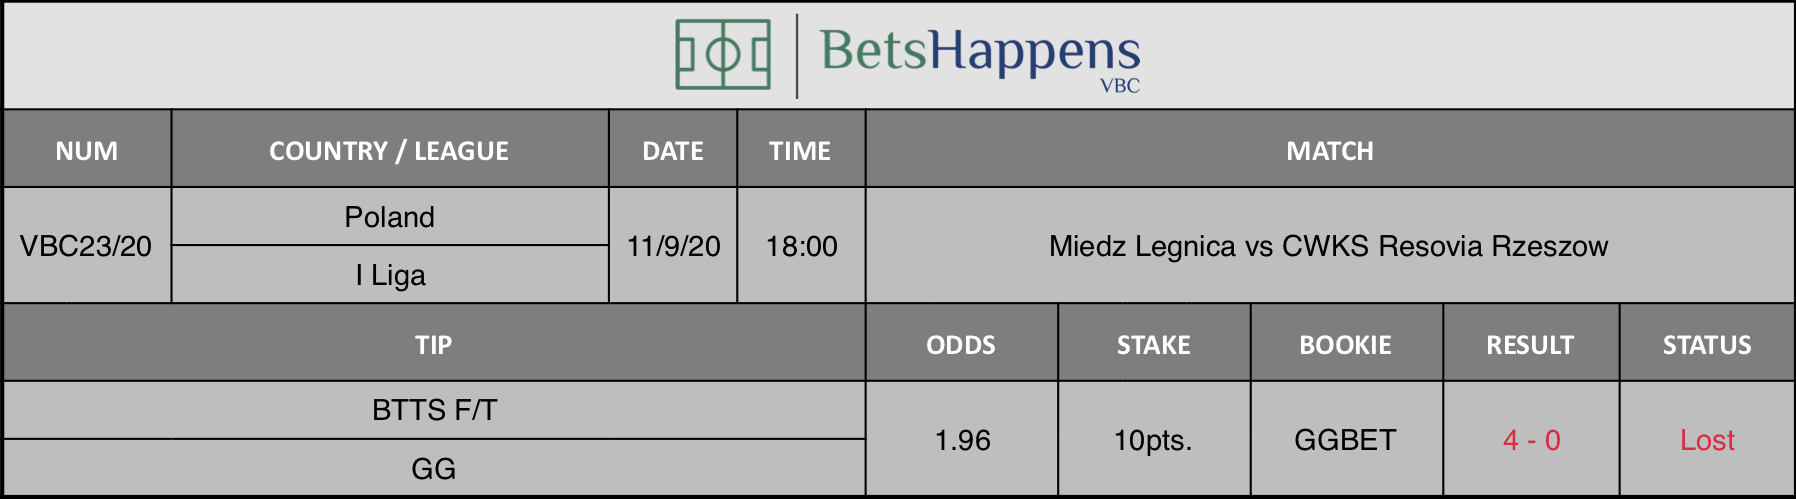 Results of our advice from the Miedz Legnica vs CWKS Resovia Rzeszow match in which BTTS F / T GG is recommended.